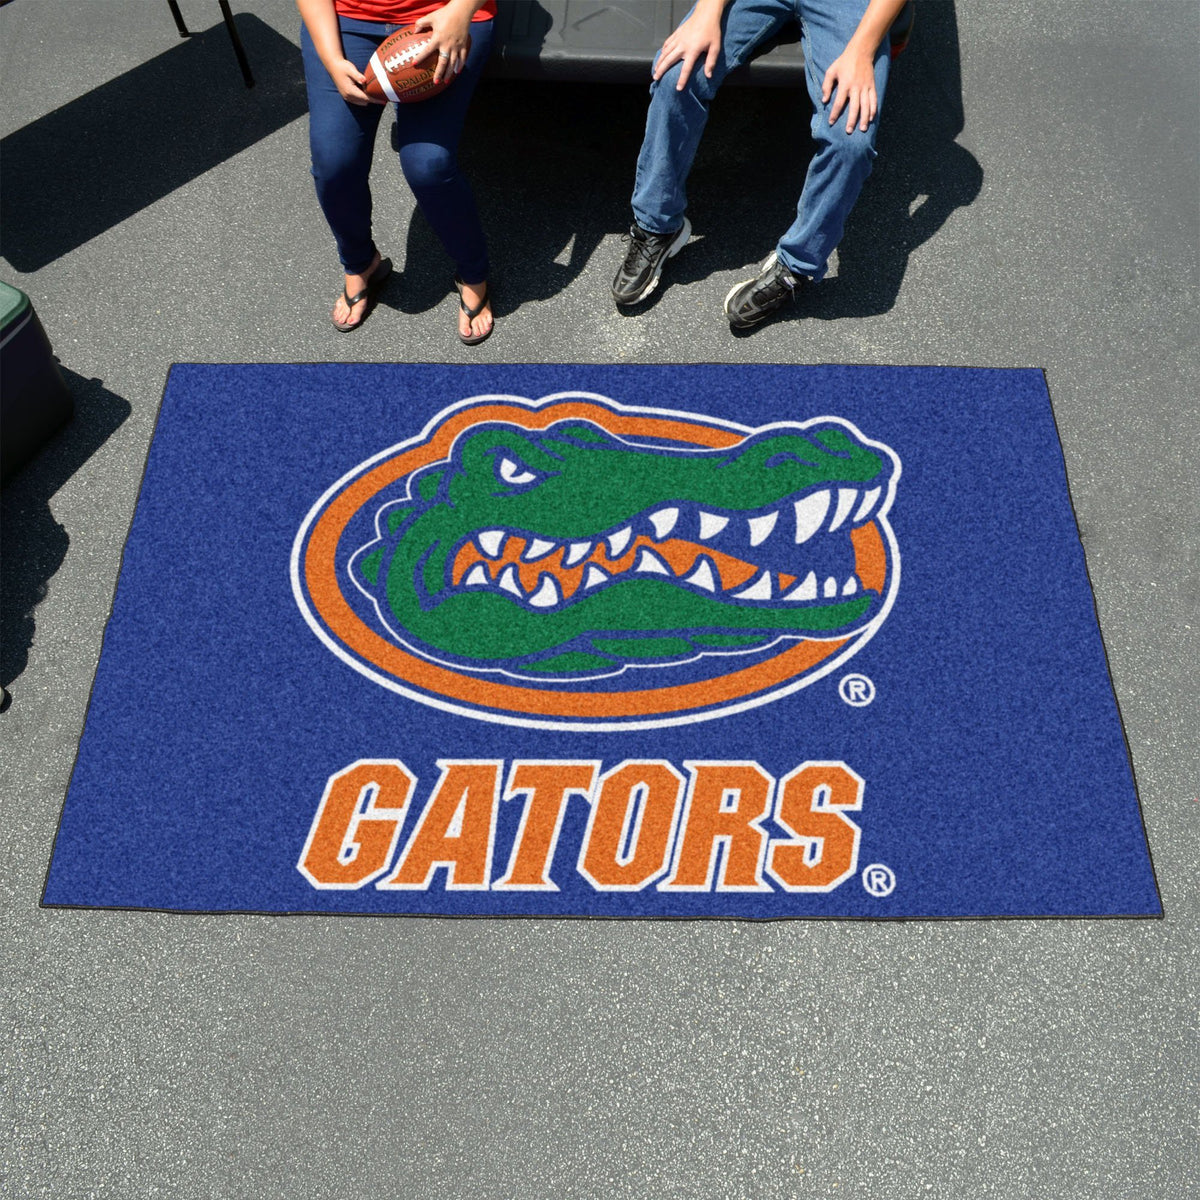 Collegiate - Ulti-Mat: A - L Collegiate Mats, Rectangular Mats, Ulti-Mat, Collegiate, Home Fan Mats Florida